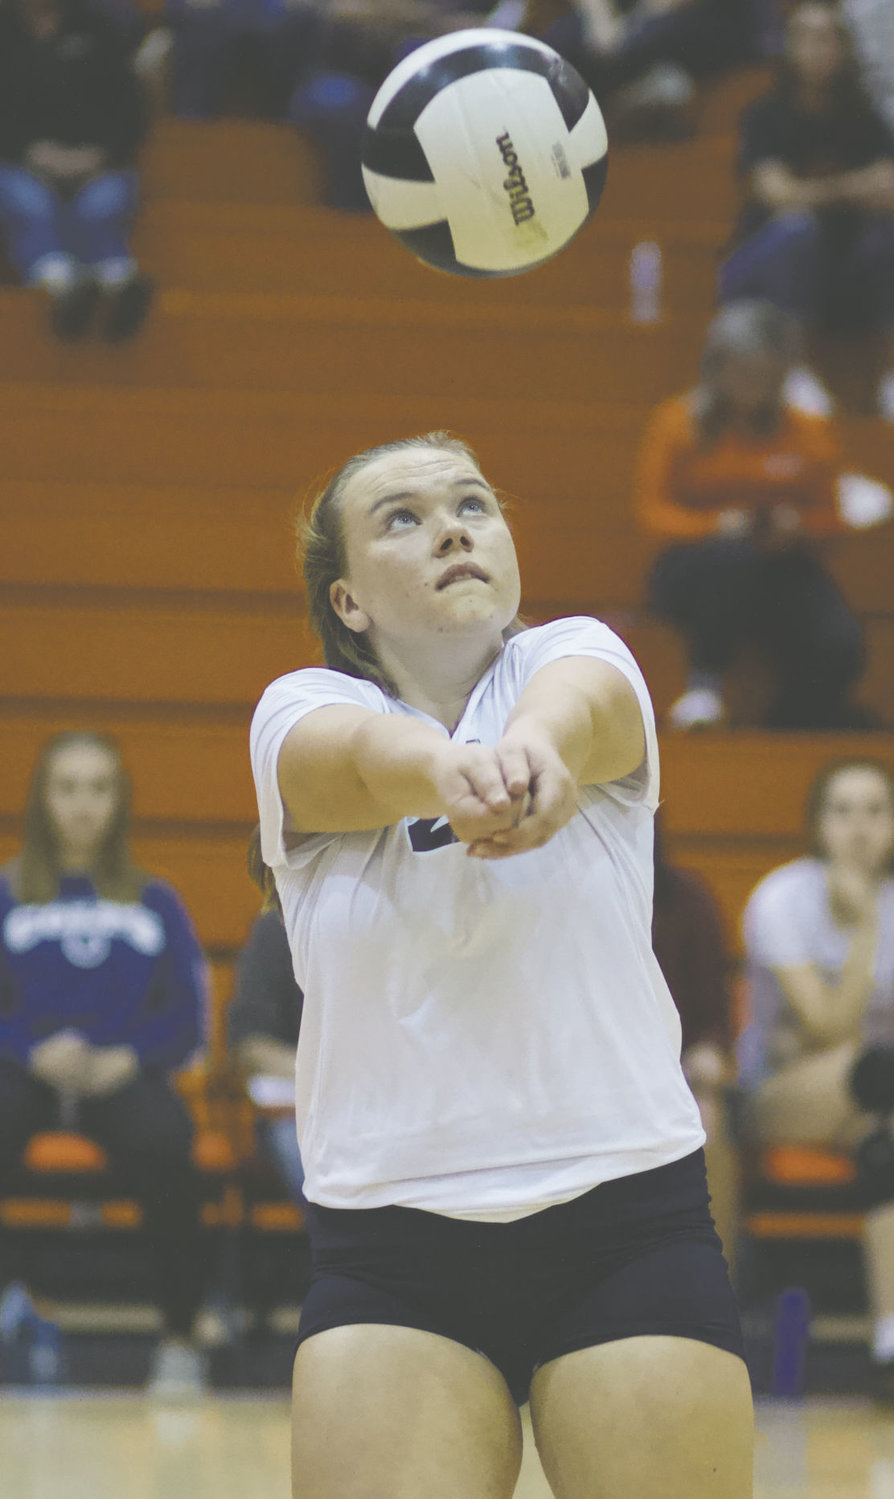 North Montgomery's Gracie Chapman keeps her eyes on the ball in the Charger's loss to Southmont on Tuesday.